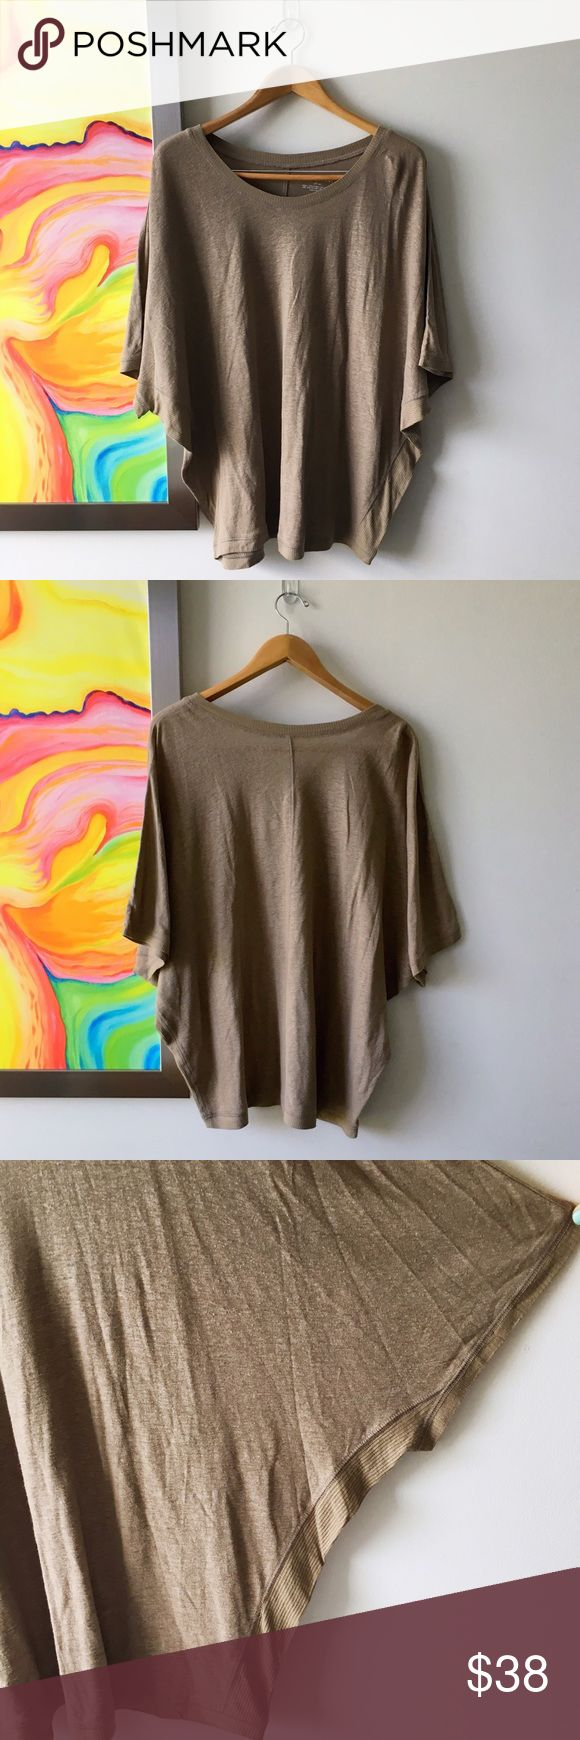 LANE BRYANT Sandy Linen Summer Top Never worn. Great modern design in a lovely summer neutral. Fabric is a linen blend, so breathable with a lovely pilled texture of Linen that gives it a cozy feel from the first wear. Sleeves are batwing style💕 Lane Bryant Tops